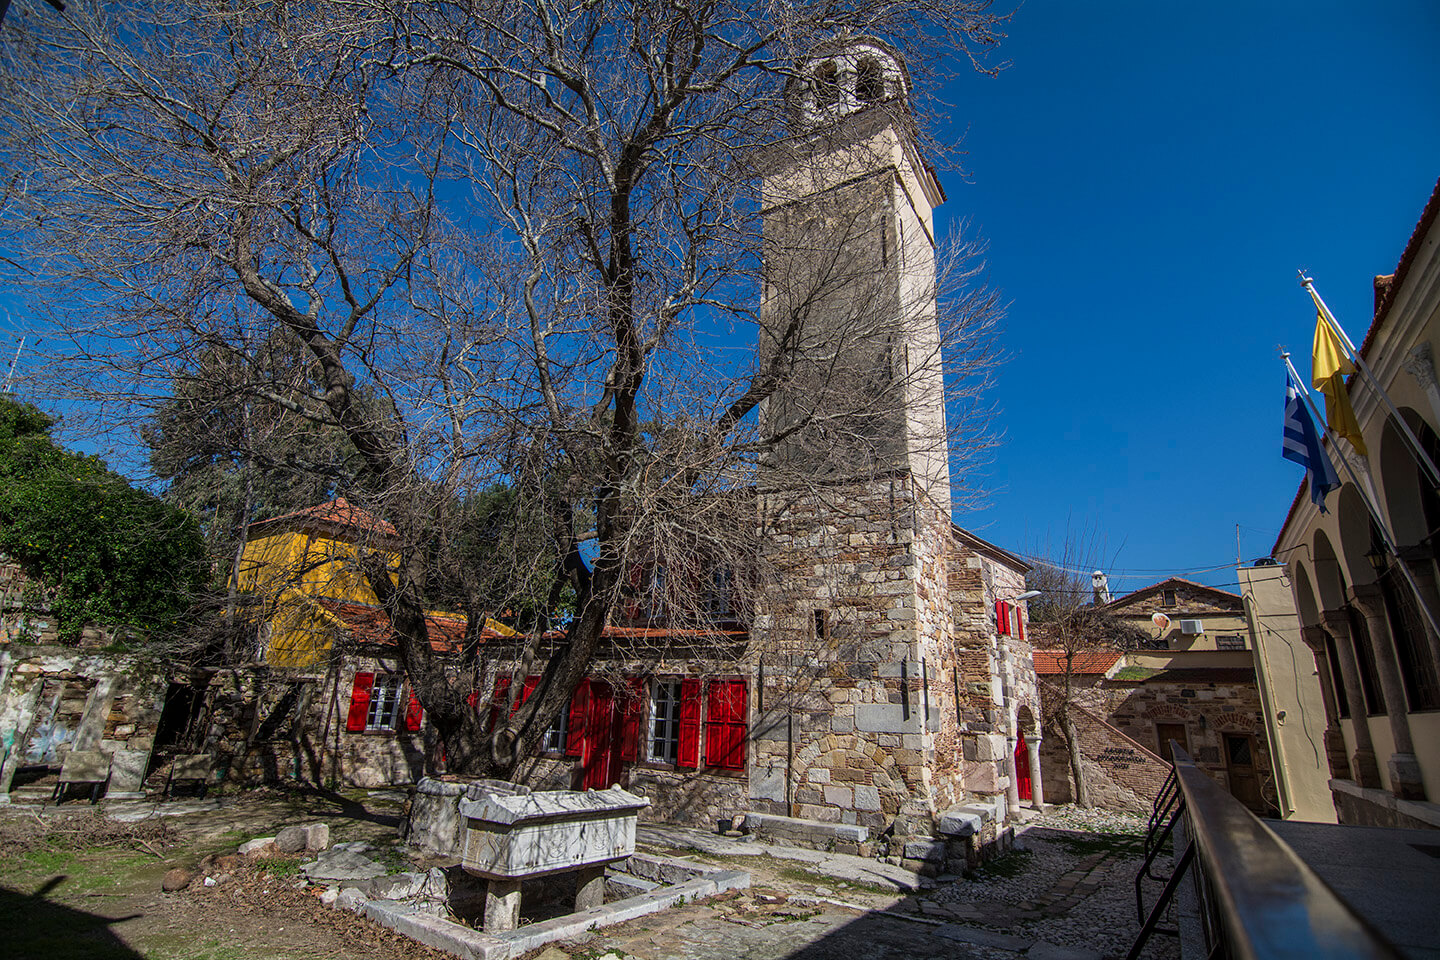 Stone Buildins in Old Twon of Chios